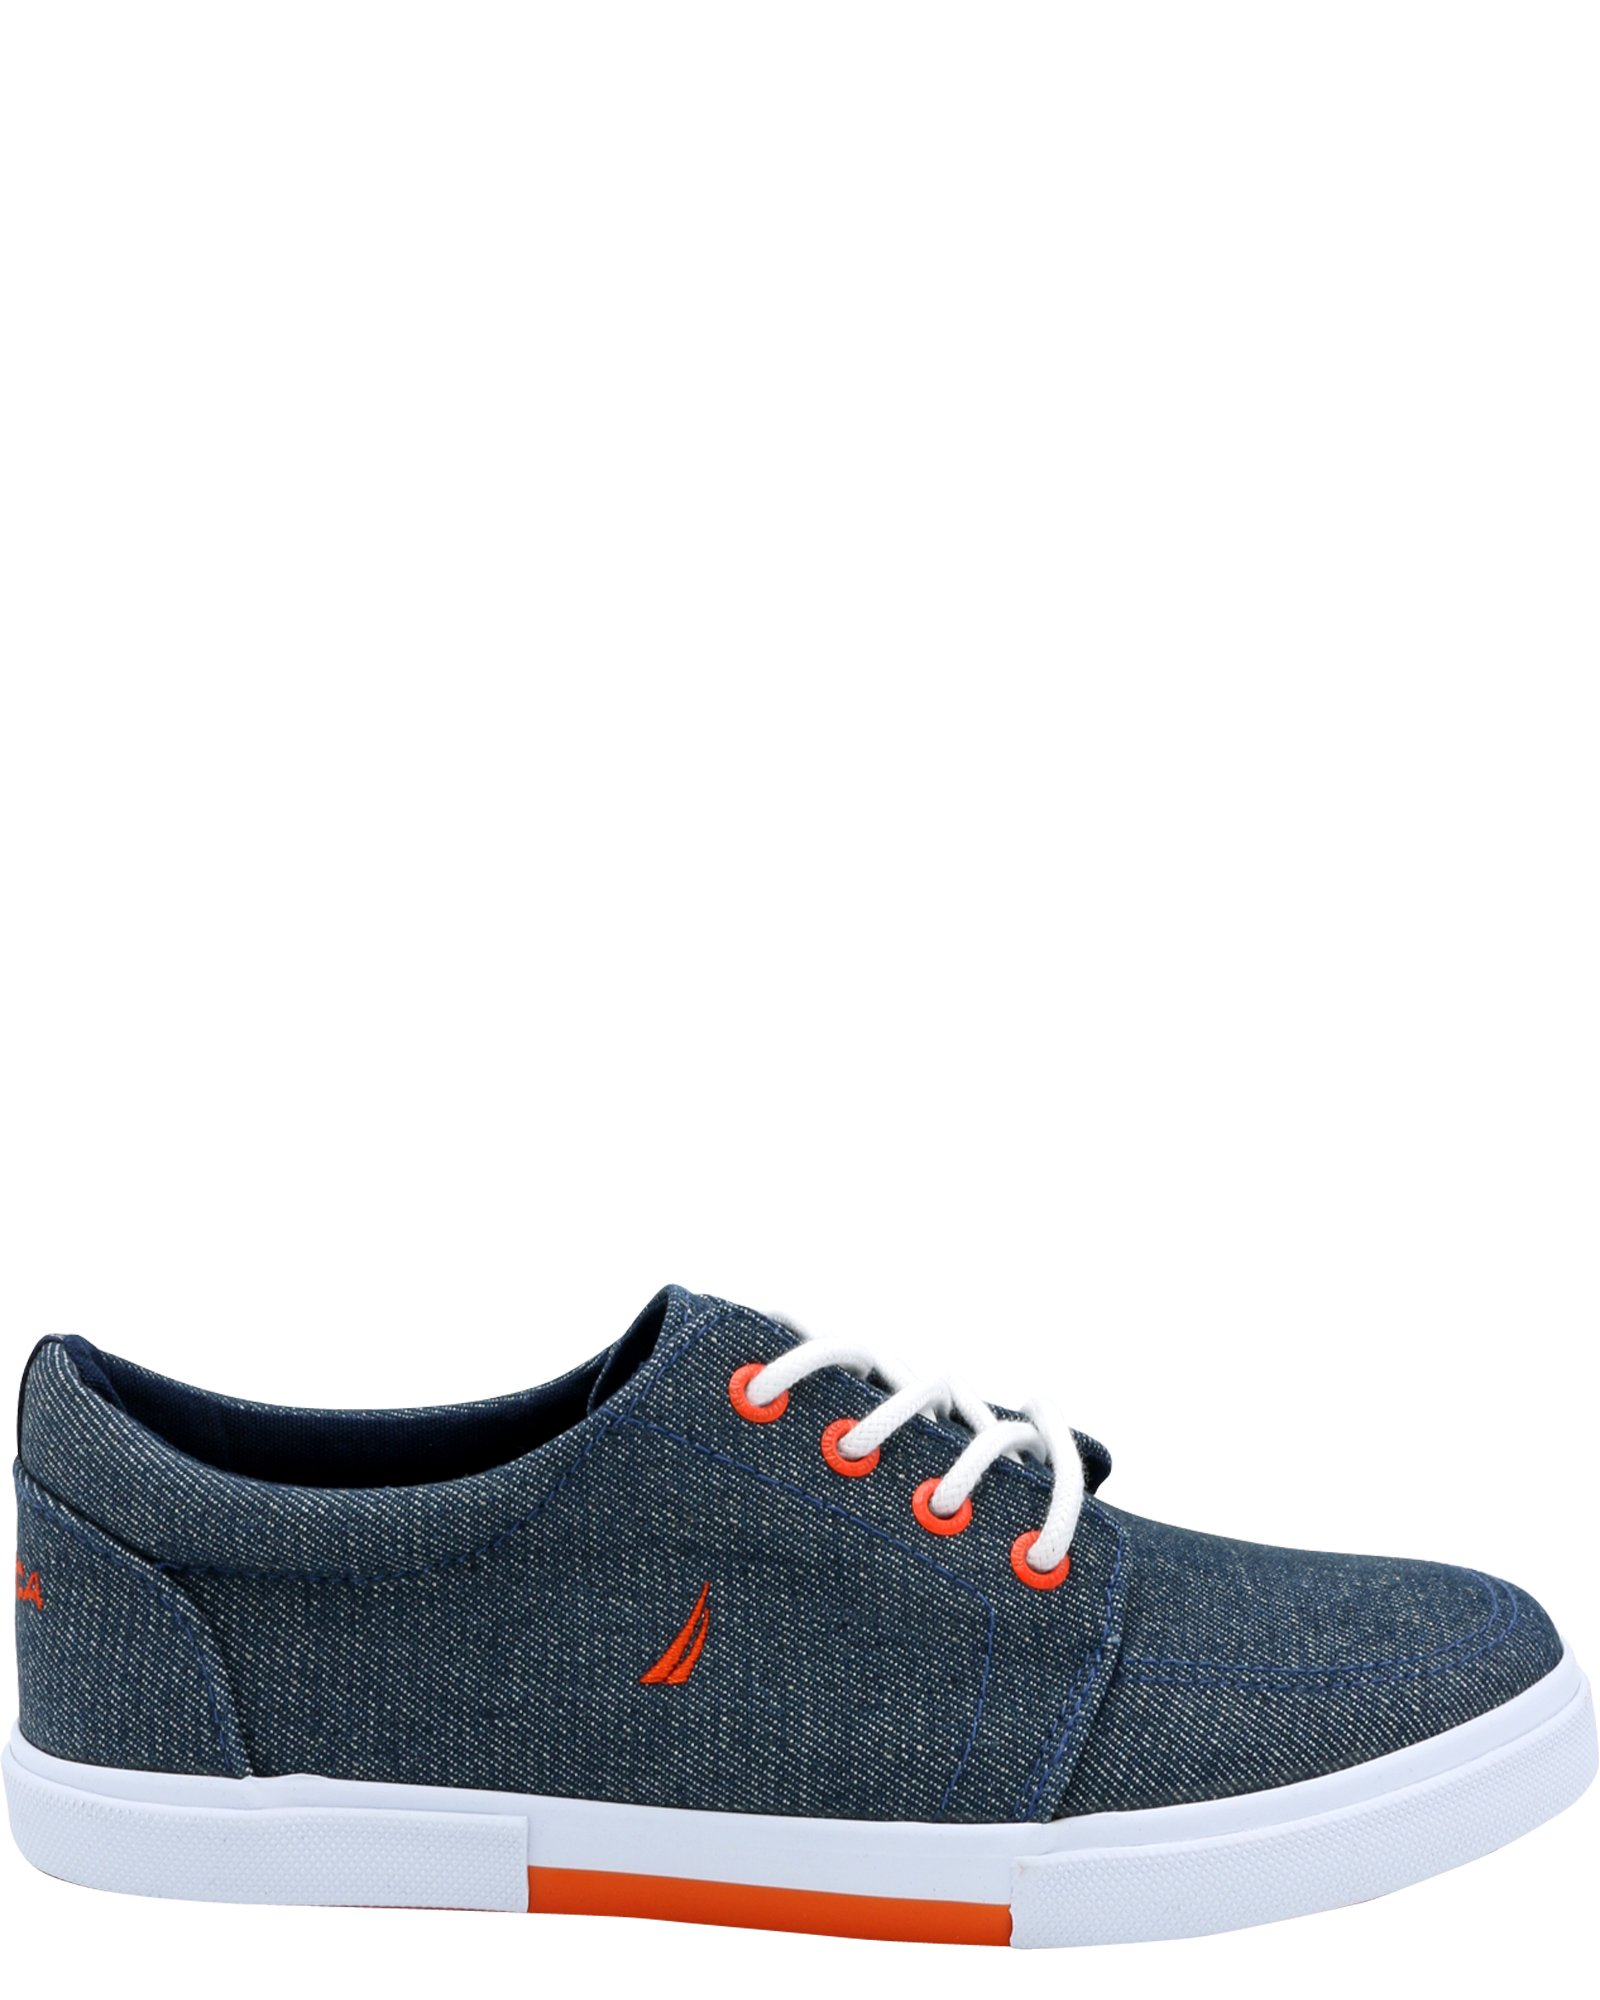 Nautica Boys' Berrian Low-Top Sneakers (Sizes 13-5) - Chambray Blue, 5 Youth